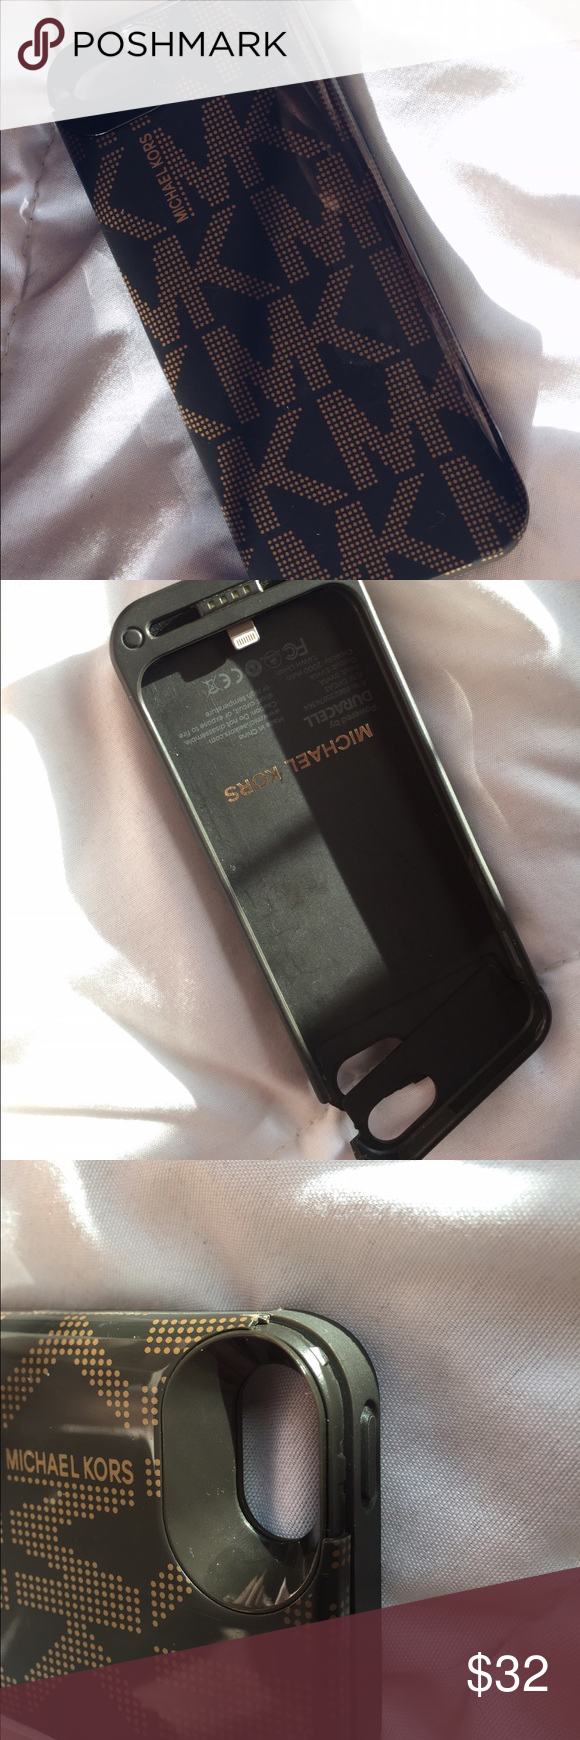 Michael Kors iPhone 5s Charger Case Needs a charger the top part is chipped but it still works as a normal case charger Michael Kors Accessories Phone Cases